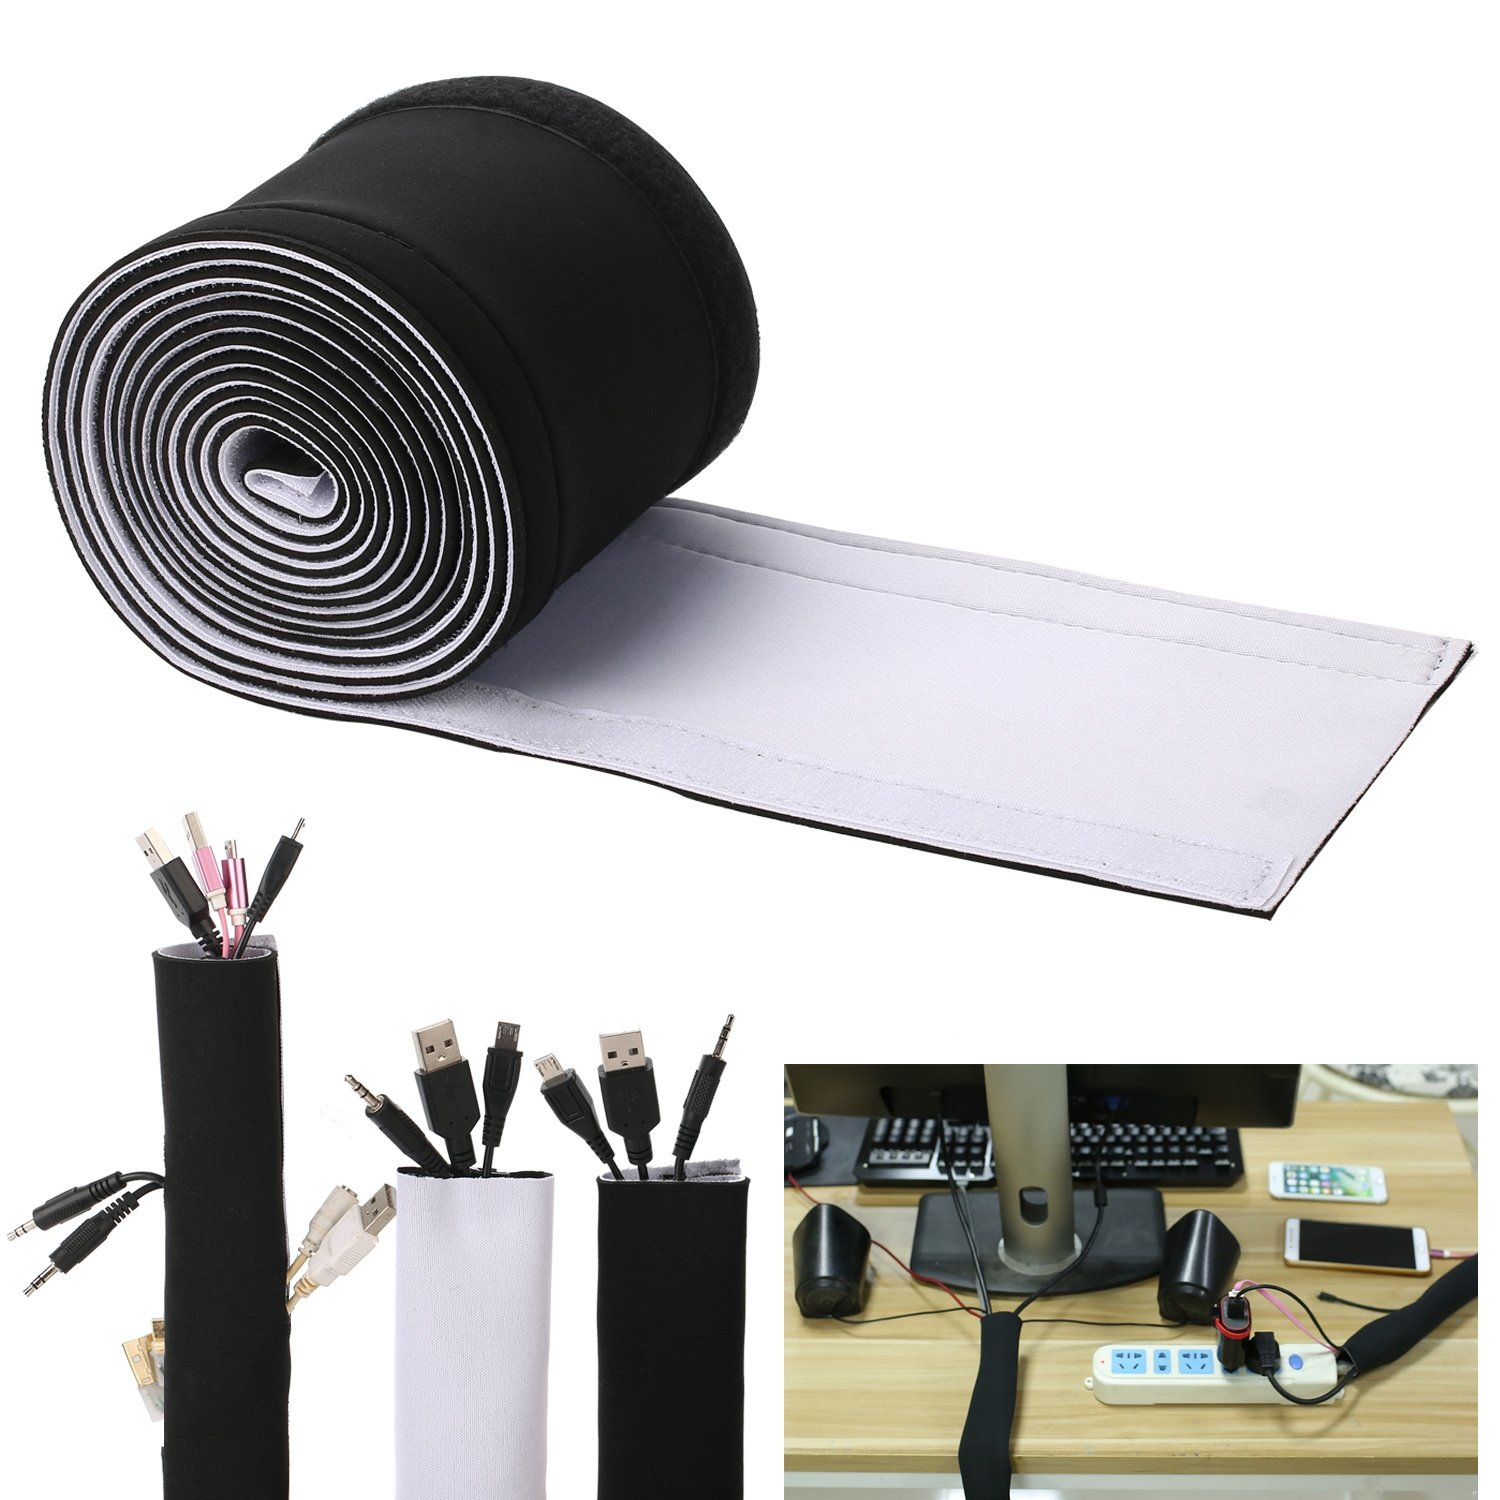 Cable Management Sleeves, Neoprene Cable Organizer Wrap Flexible Cord Cover Wire Hider Reversible Black & White, Cuttable by Yourself for TV Computer Office Theater,Looks neat,More tidy